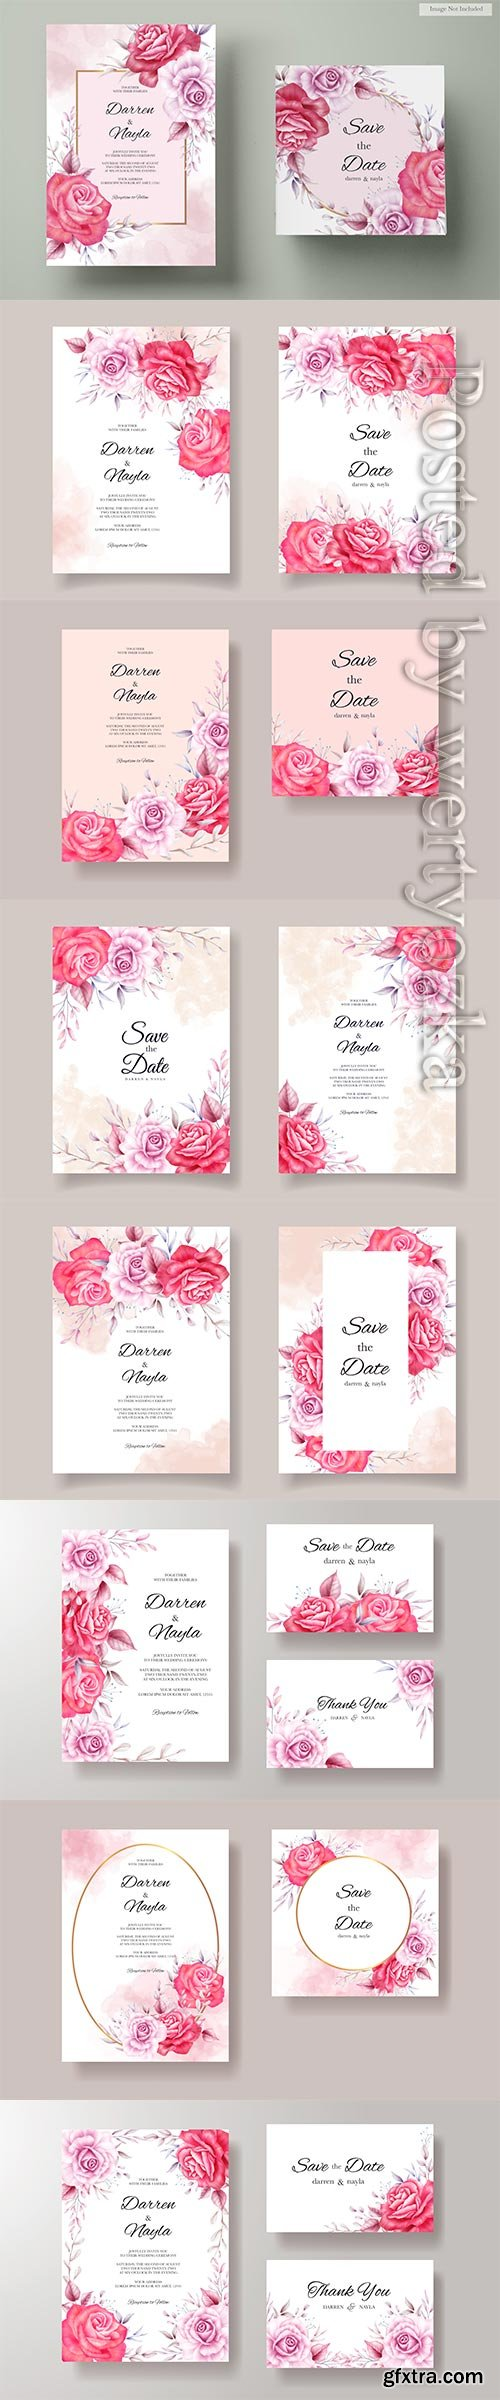 Beautiful wedding invitation with red and purple roses